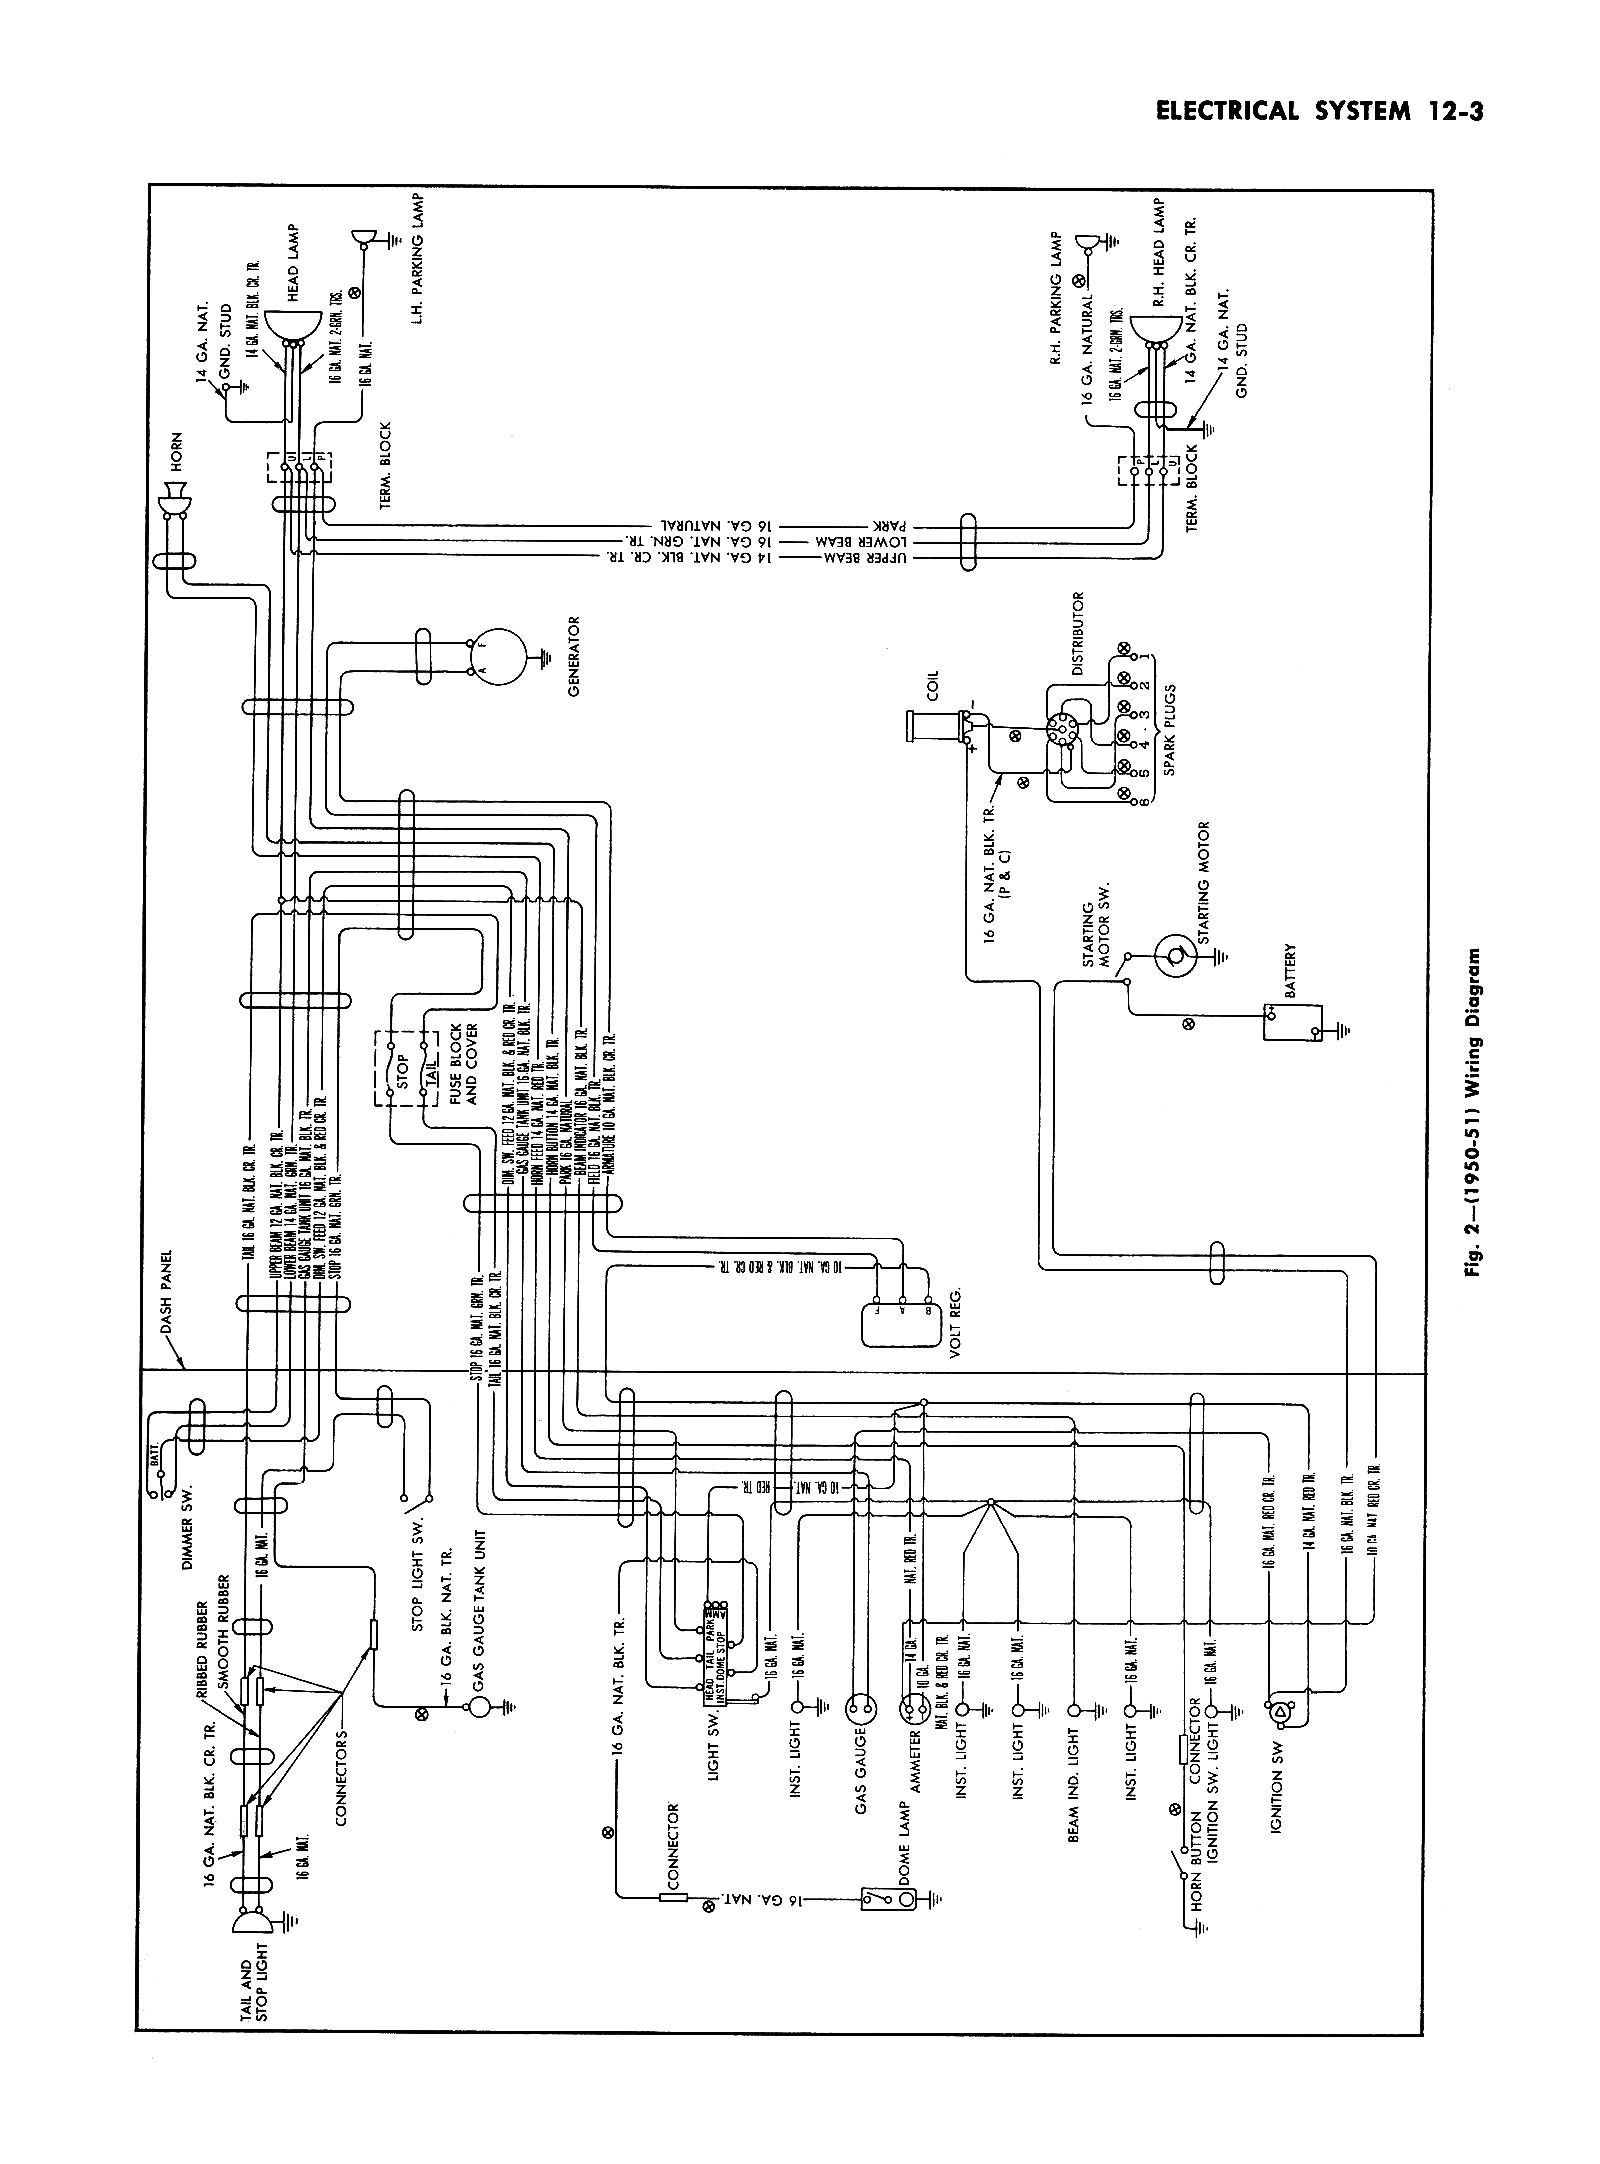 Diagram Chevy Truck Turn Signal Wiring Diagram Full